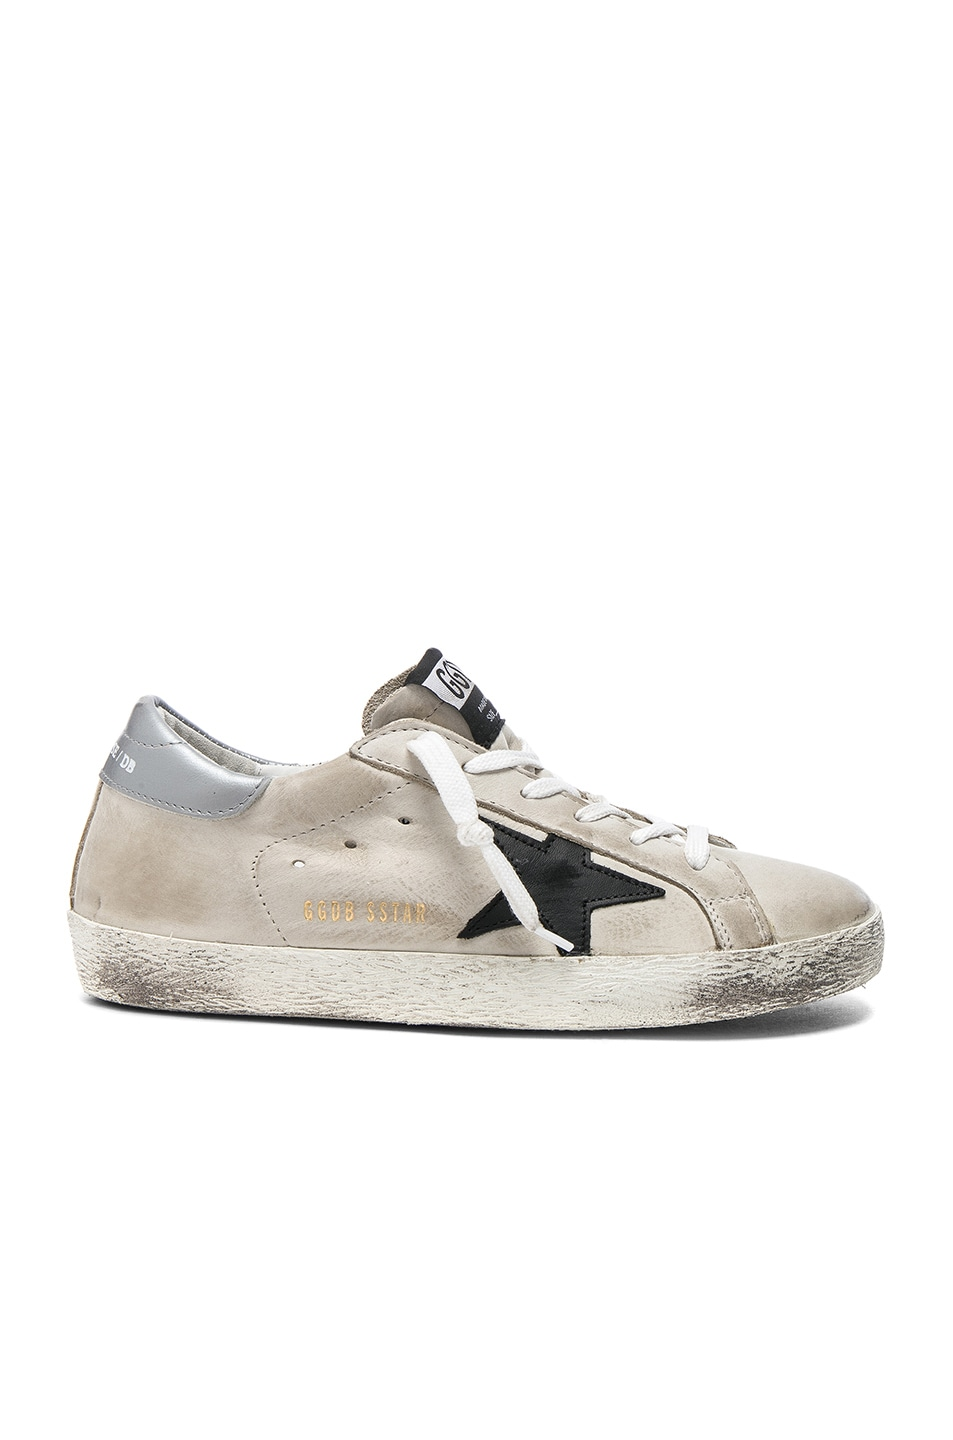 Image 1 of Golden Goose Leather Superstar Low Sneakers in Cream & Black